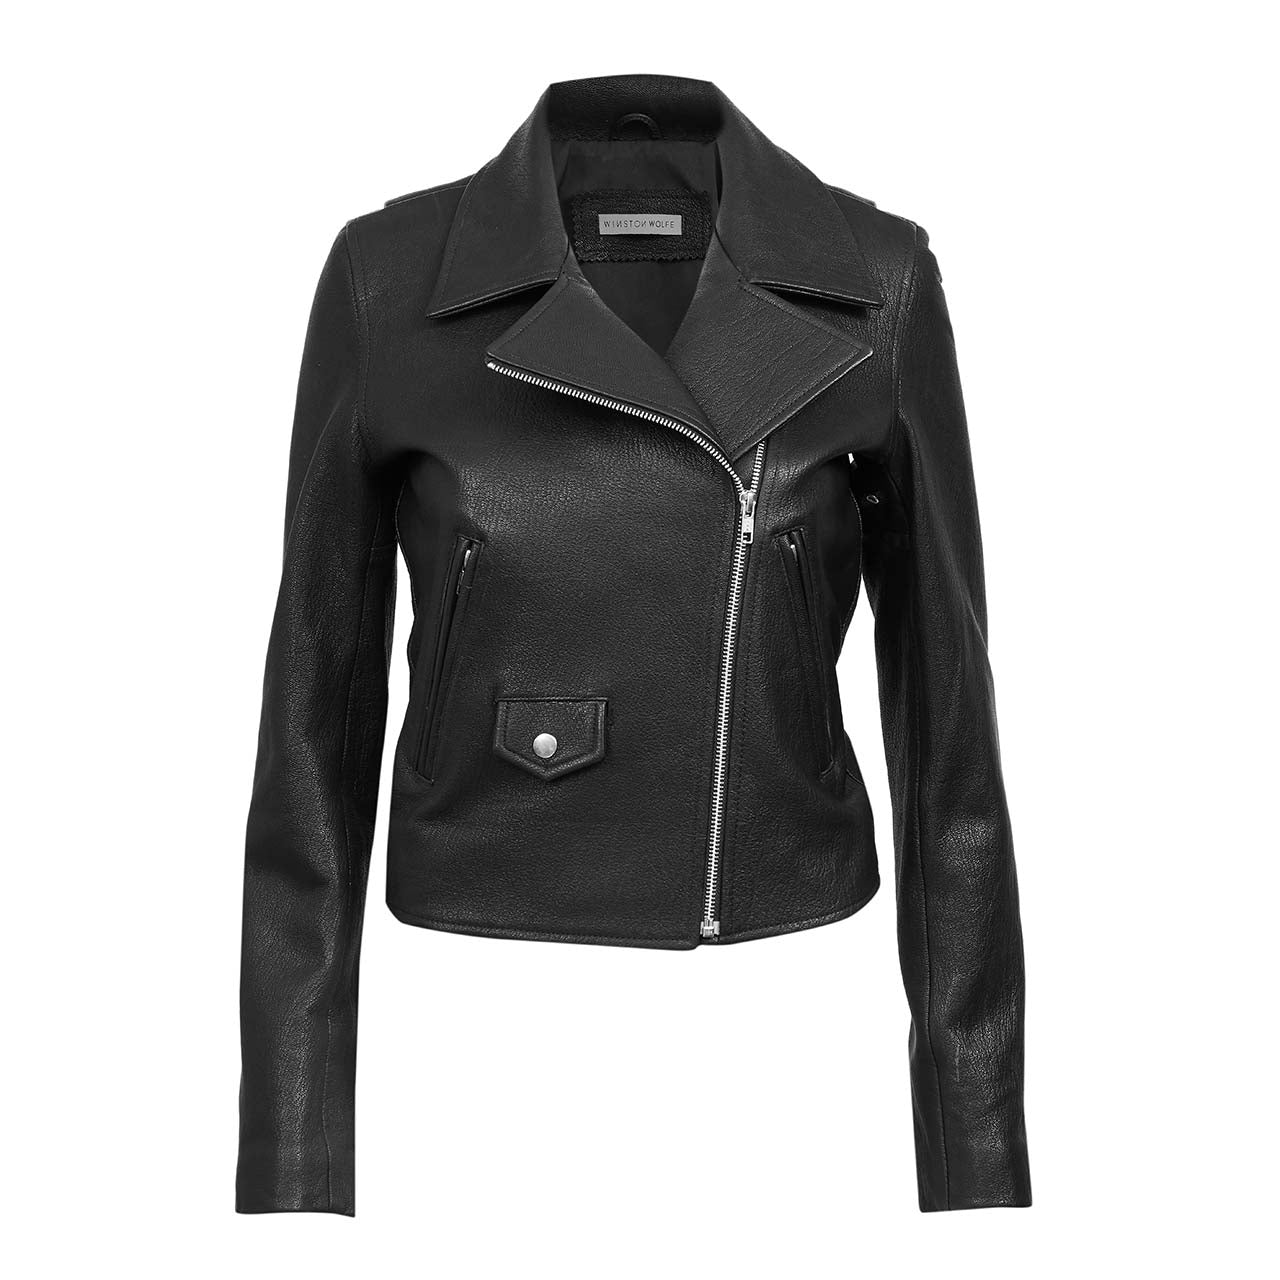 HENDRIX LEATHER JACKET - WINSTON WOLFE